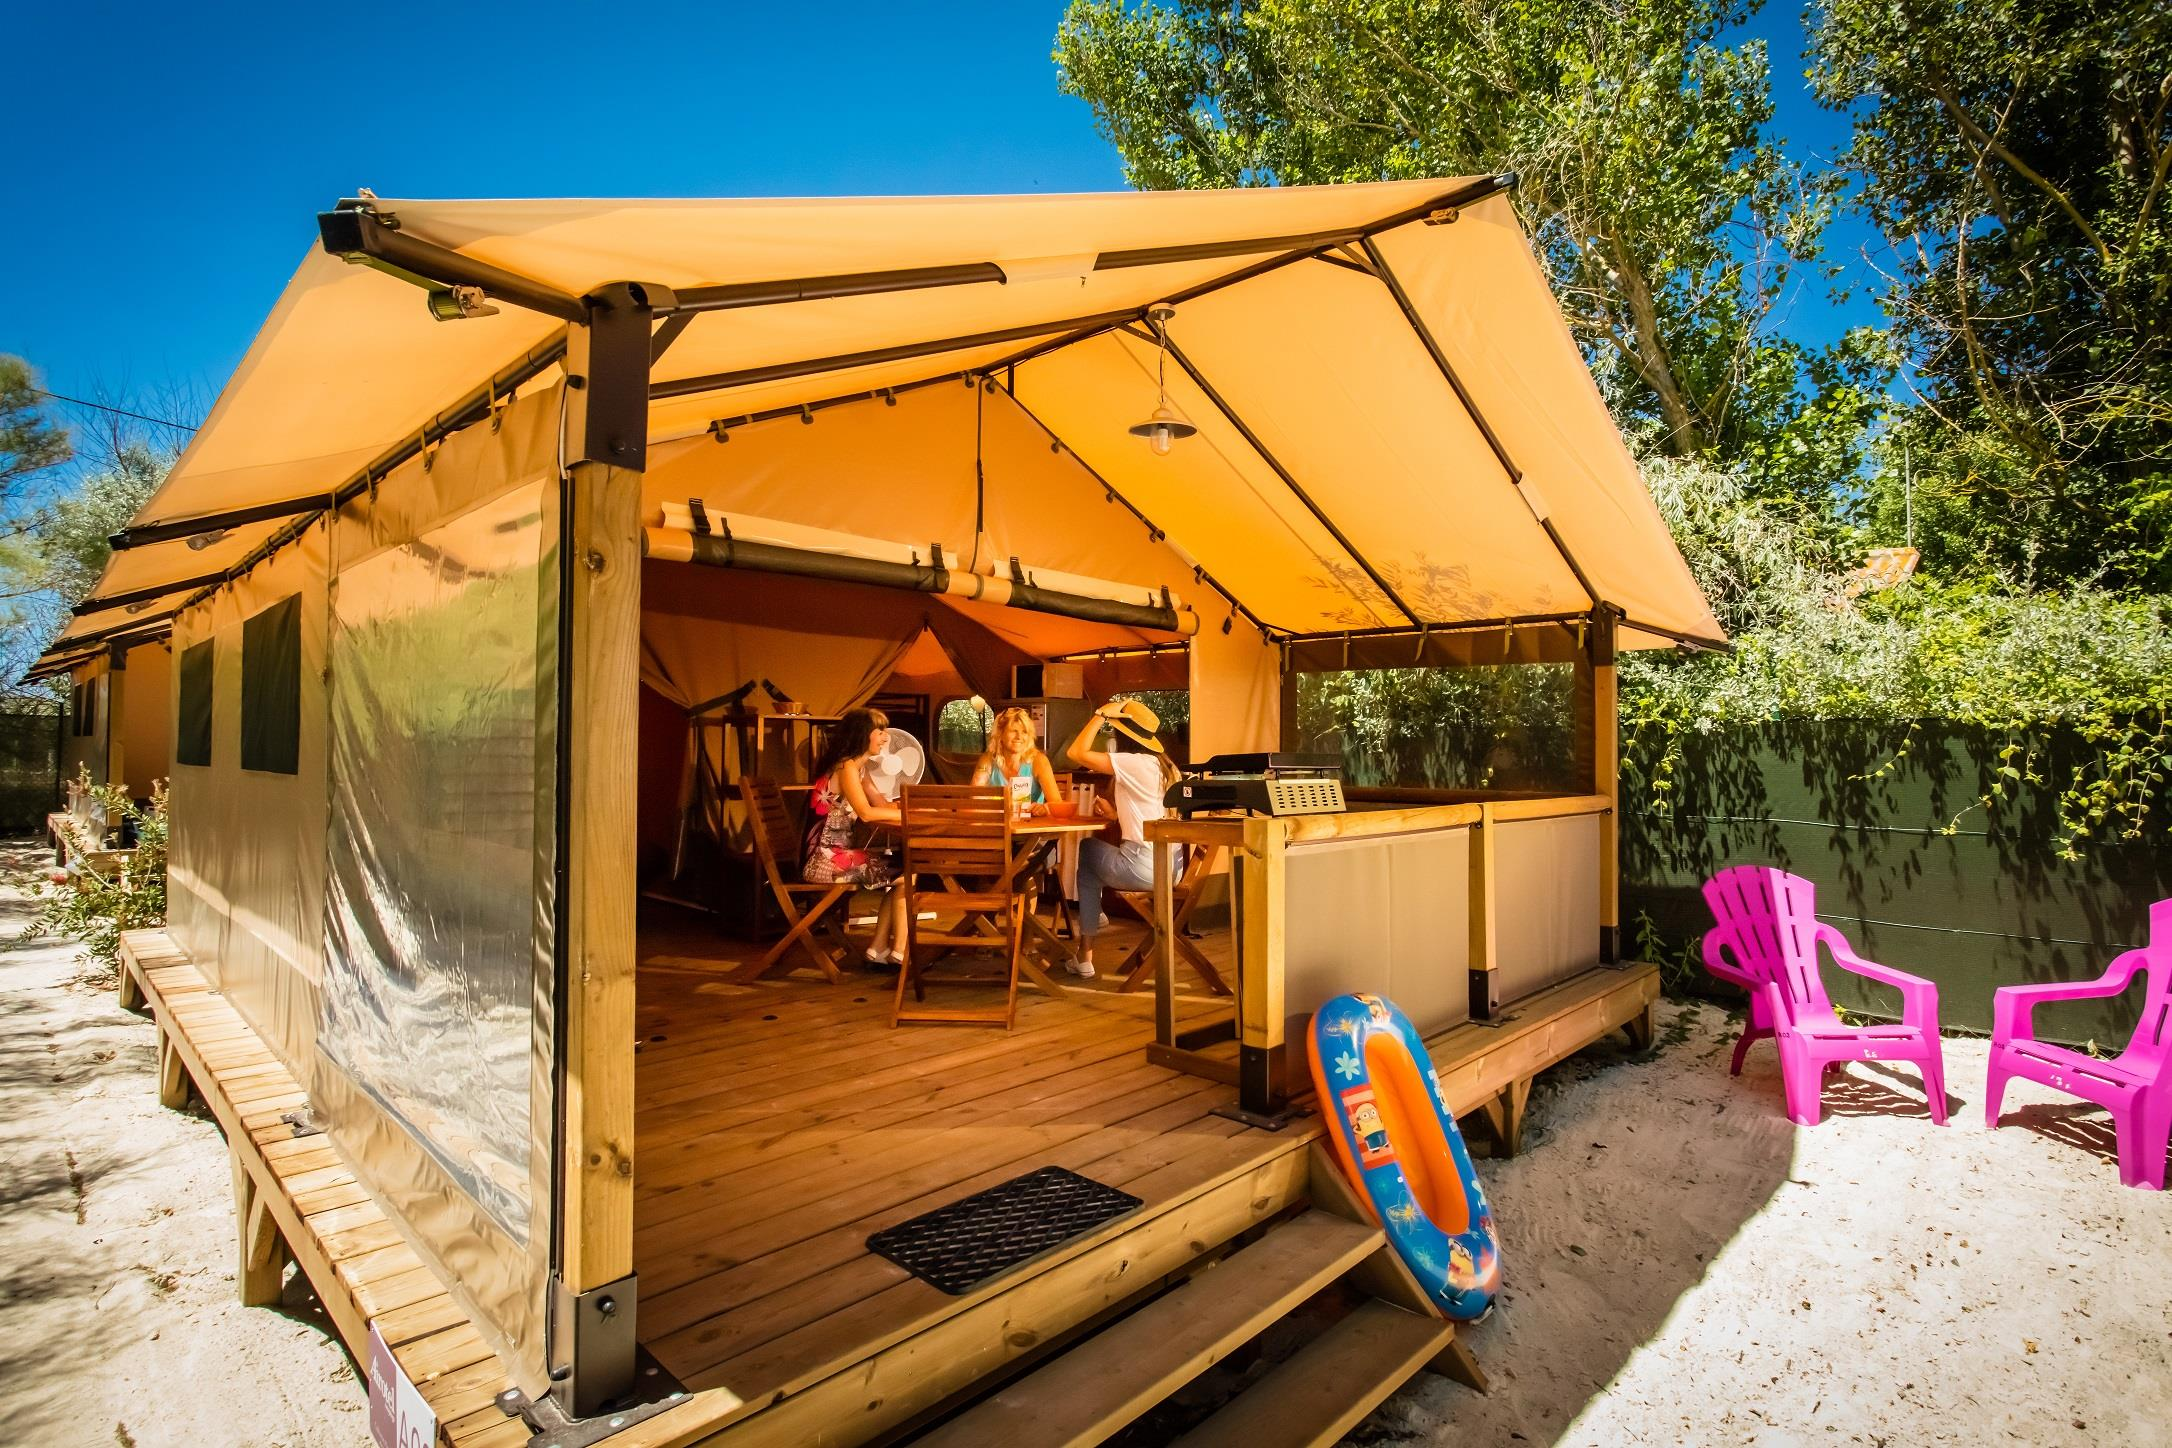 Accommodation - Walibou Lodge Confort, About 30M², On Stilts, 2 Rooms - Camping Californie Plage